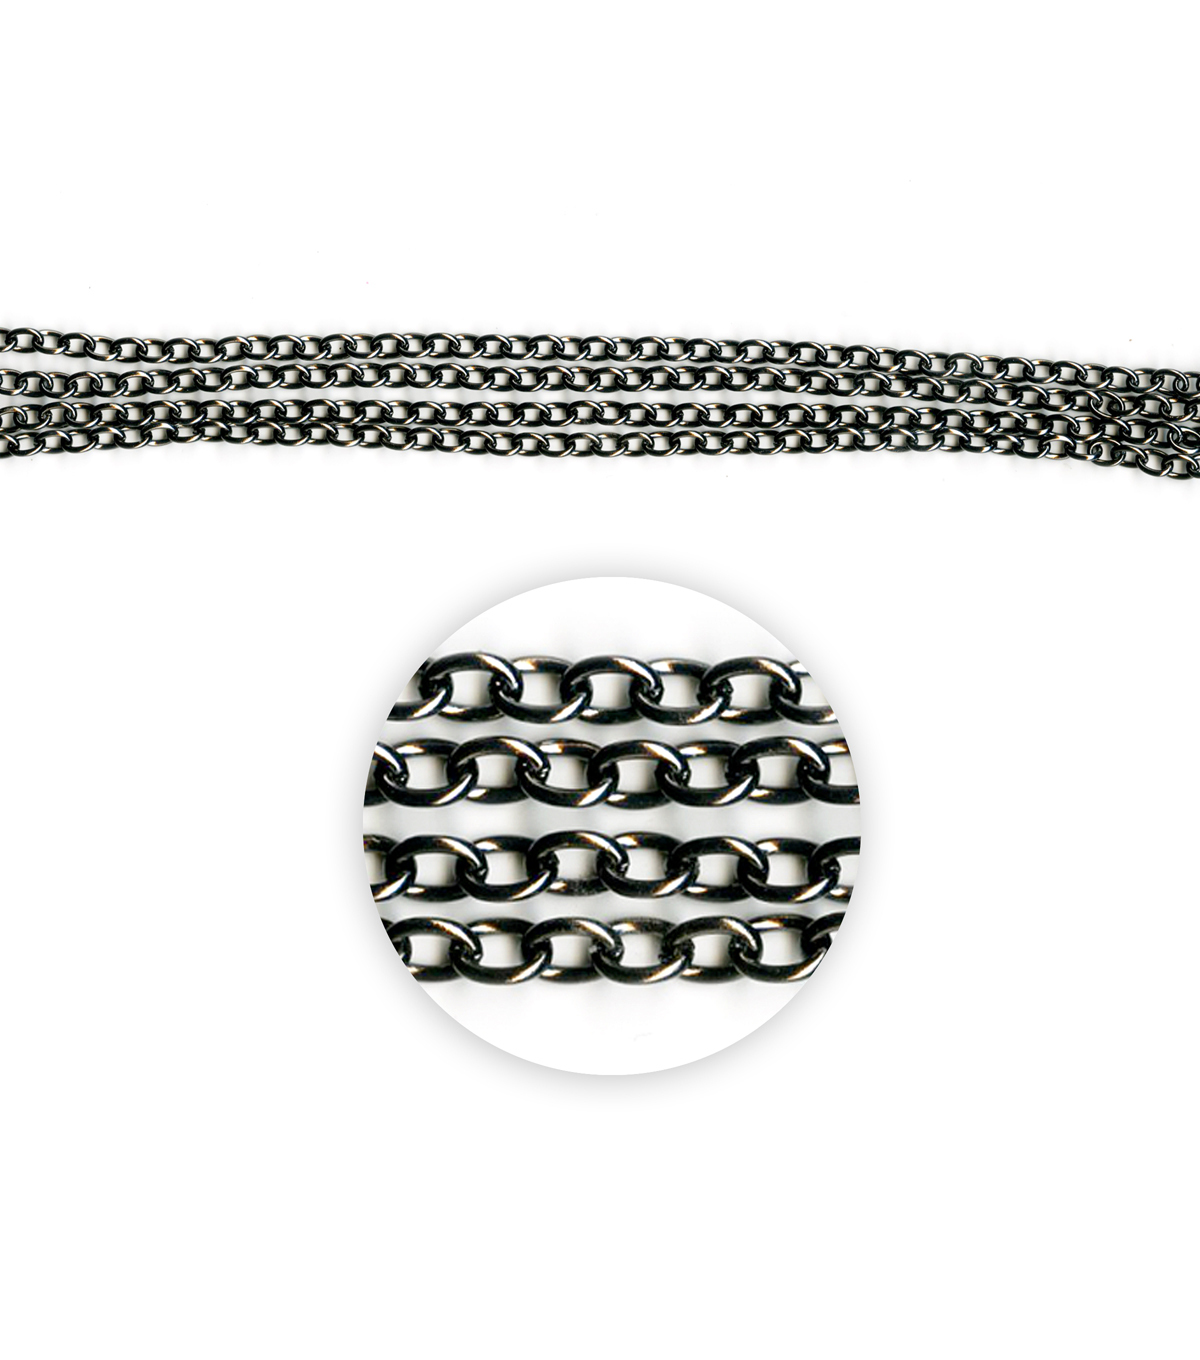 Blue Moon Beads Metal Chain 7x5mm, Oval Cable, Black Nickel-76\u0022